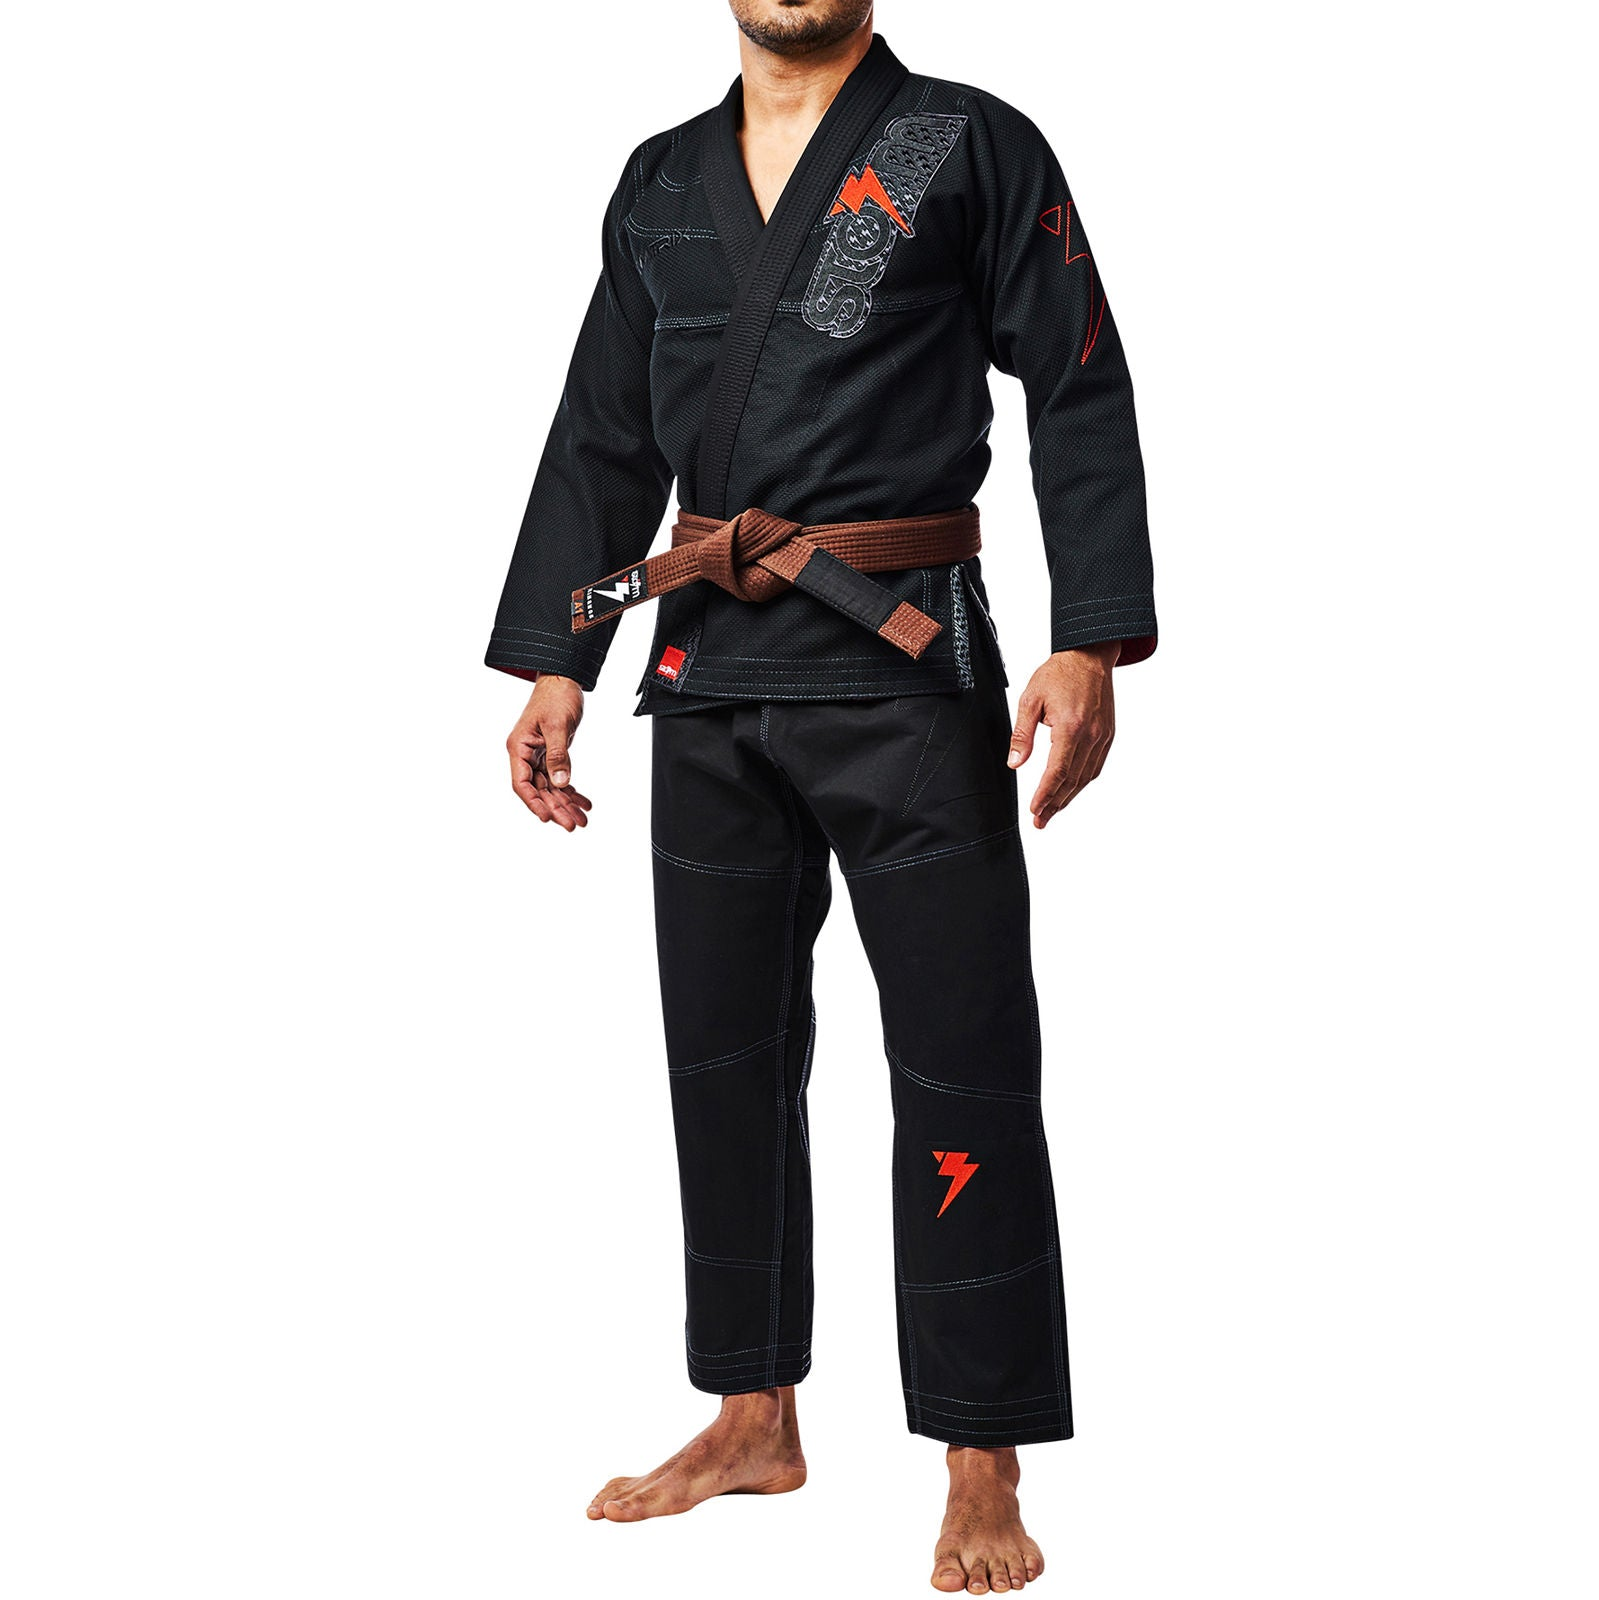 STORM GI STEALTH MATRIX KIMONO BLACK - MSM FIGHT SHOP